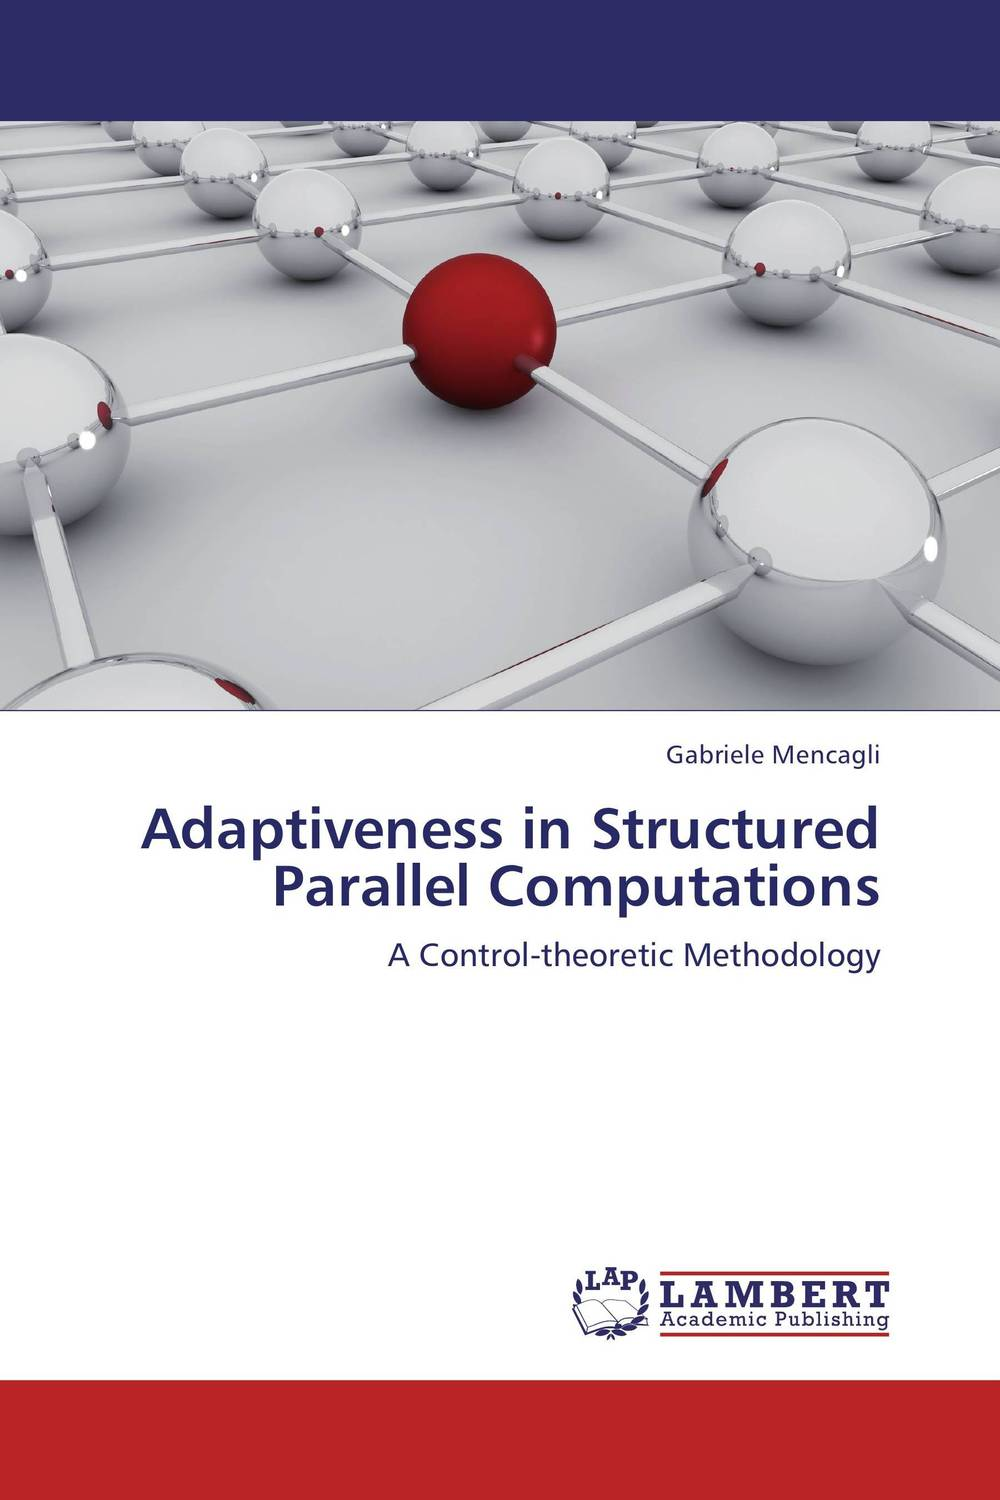 Adaptiveness in Structured Parallel Computations towards parallel execution of scientific applications